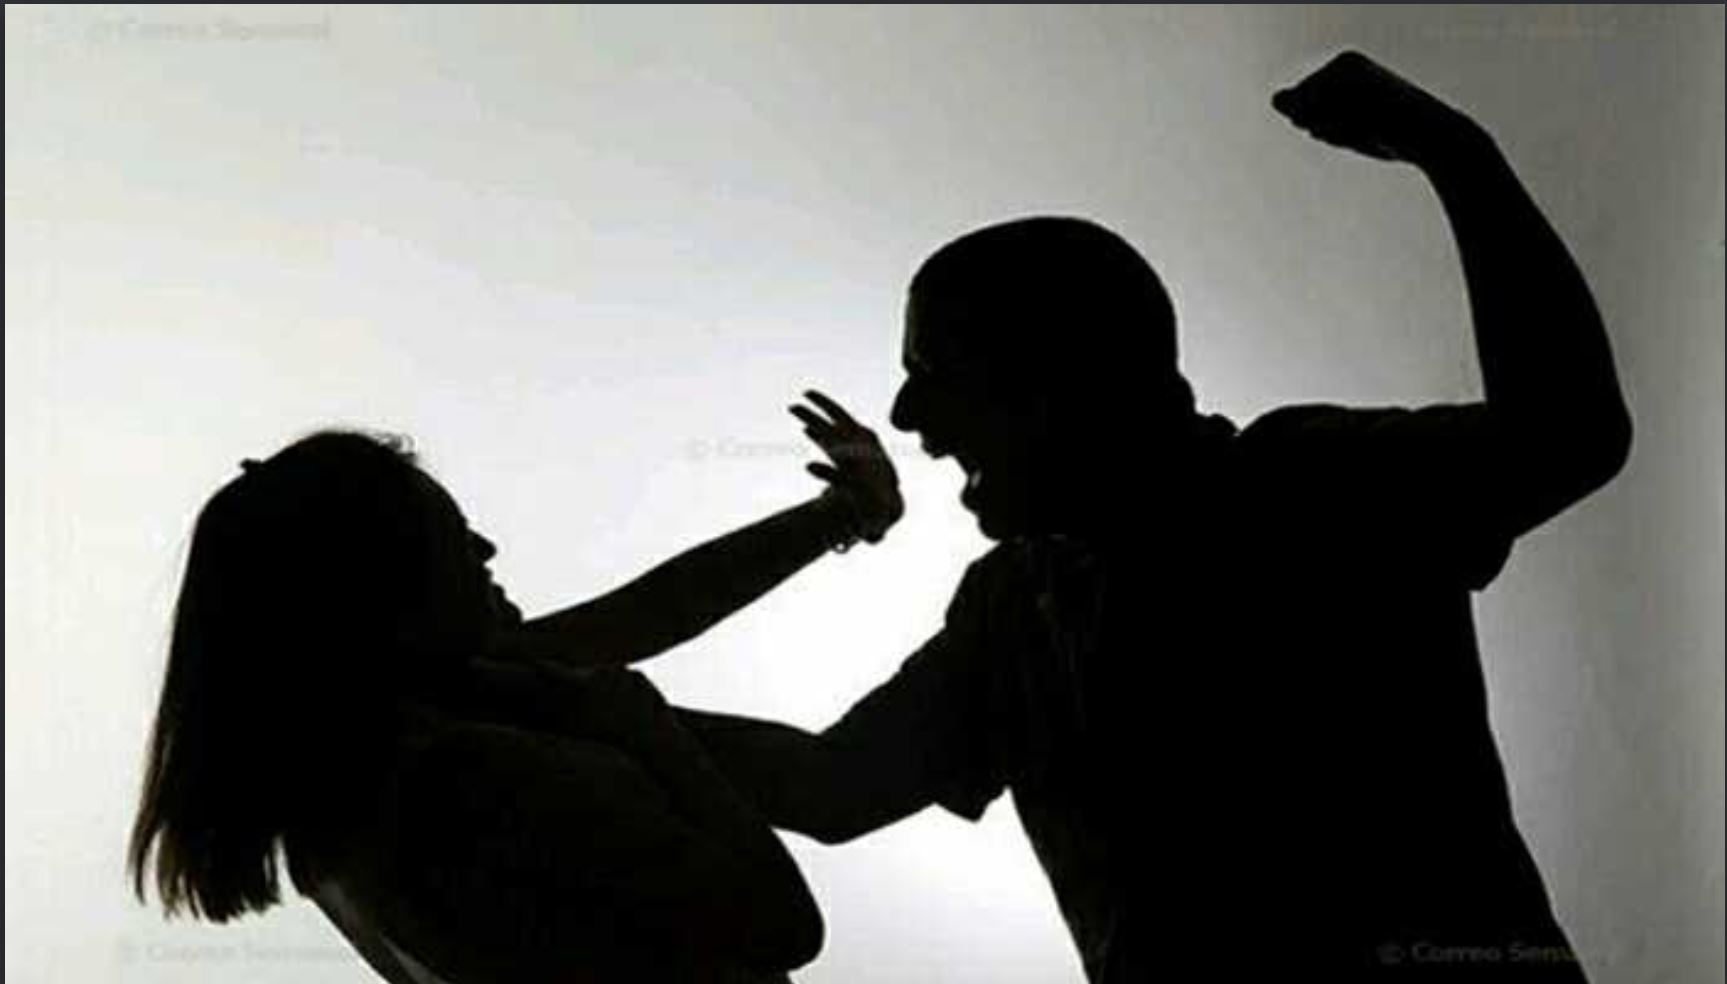 COVID-19 lockdown: Domestic, sexual violence cases rise in Lagos by 50%